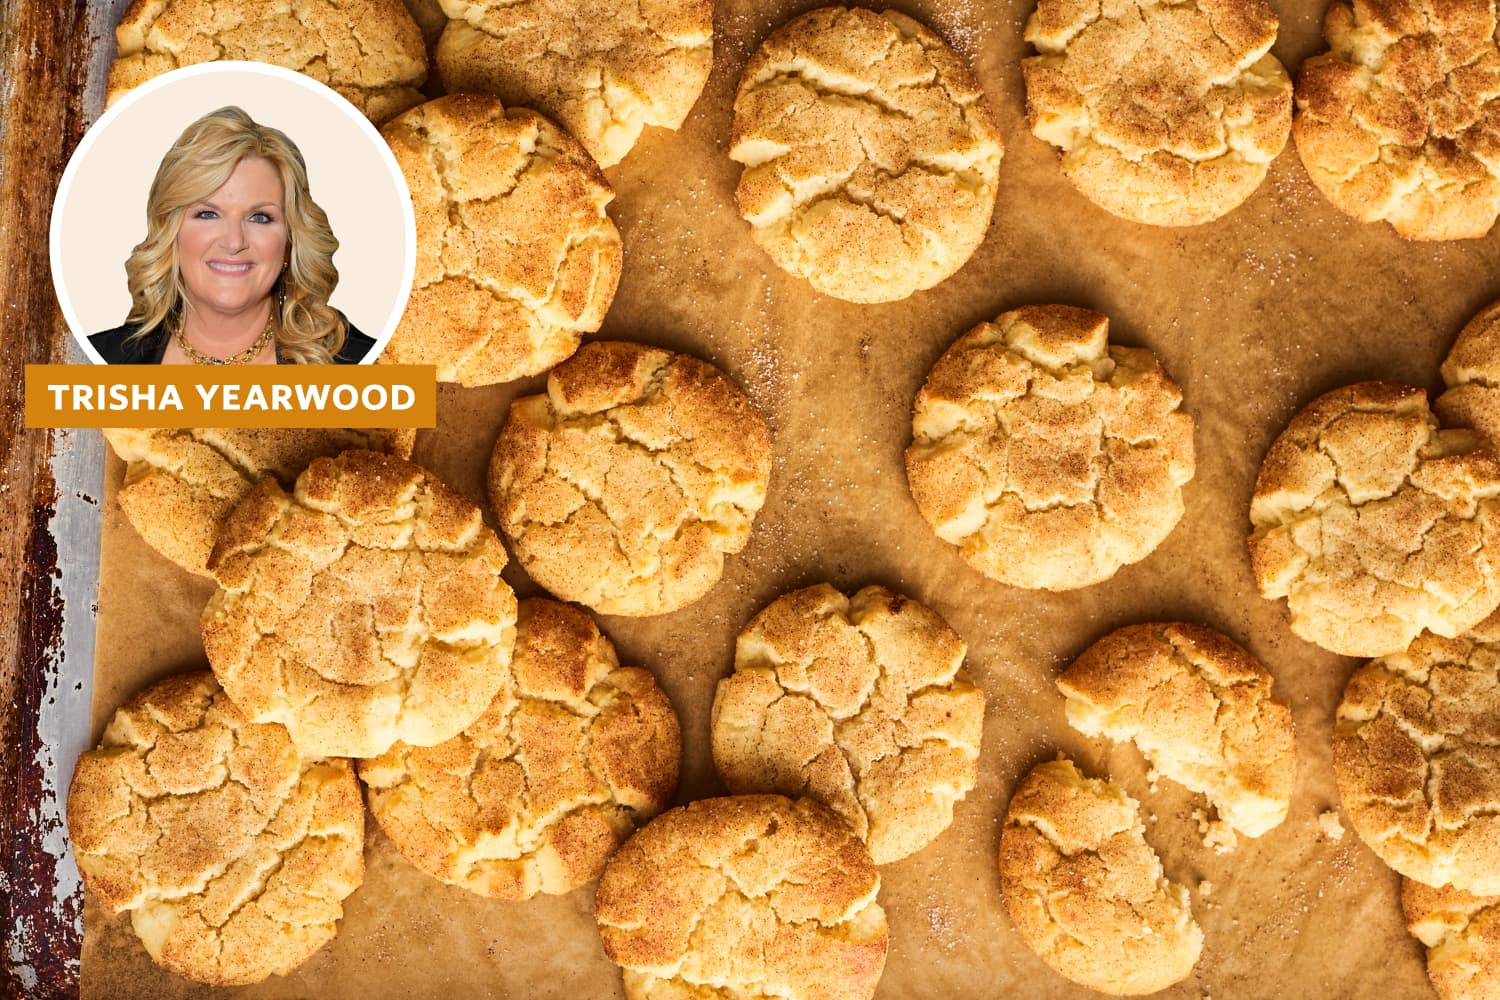 I Tried Trisha Yearwood's Incredibly Popular Snickerdoodle Recipe